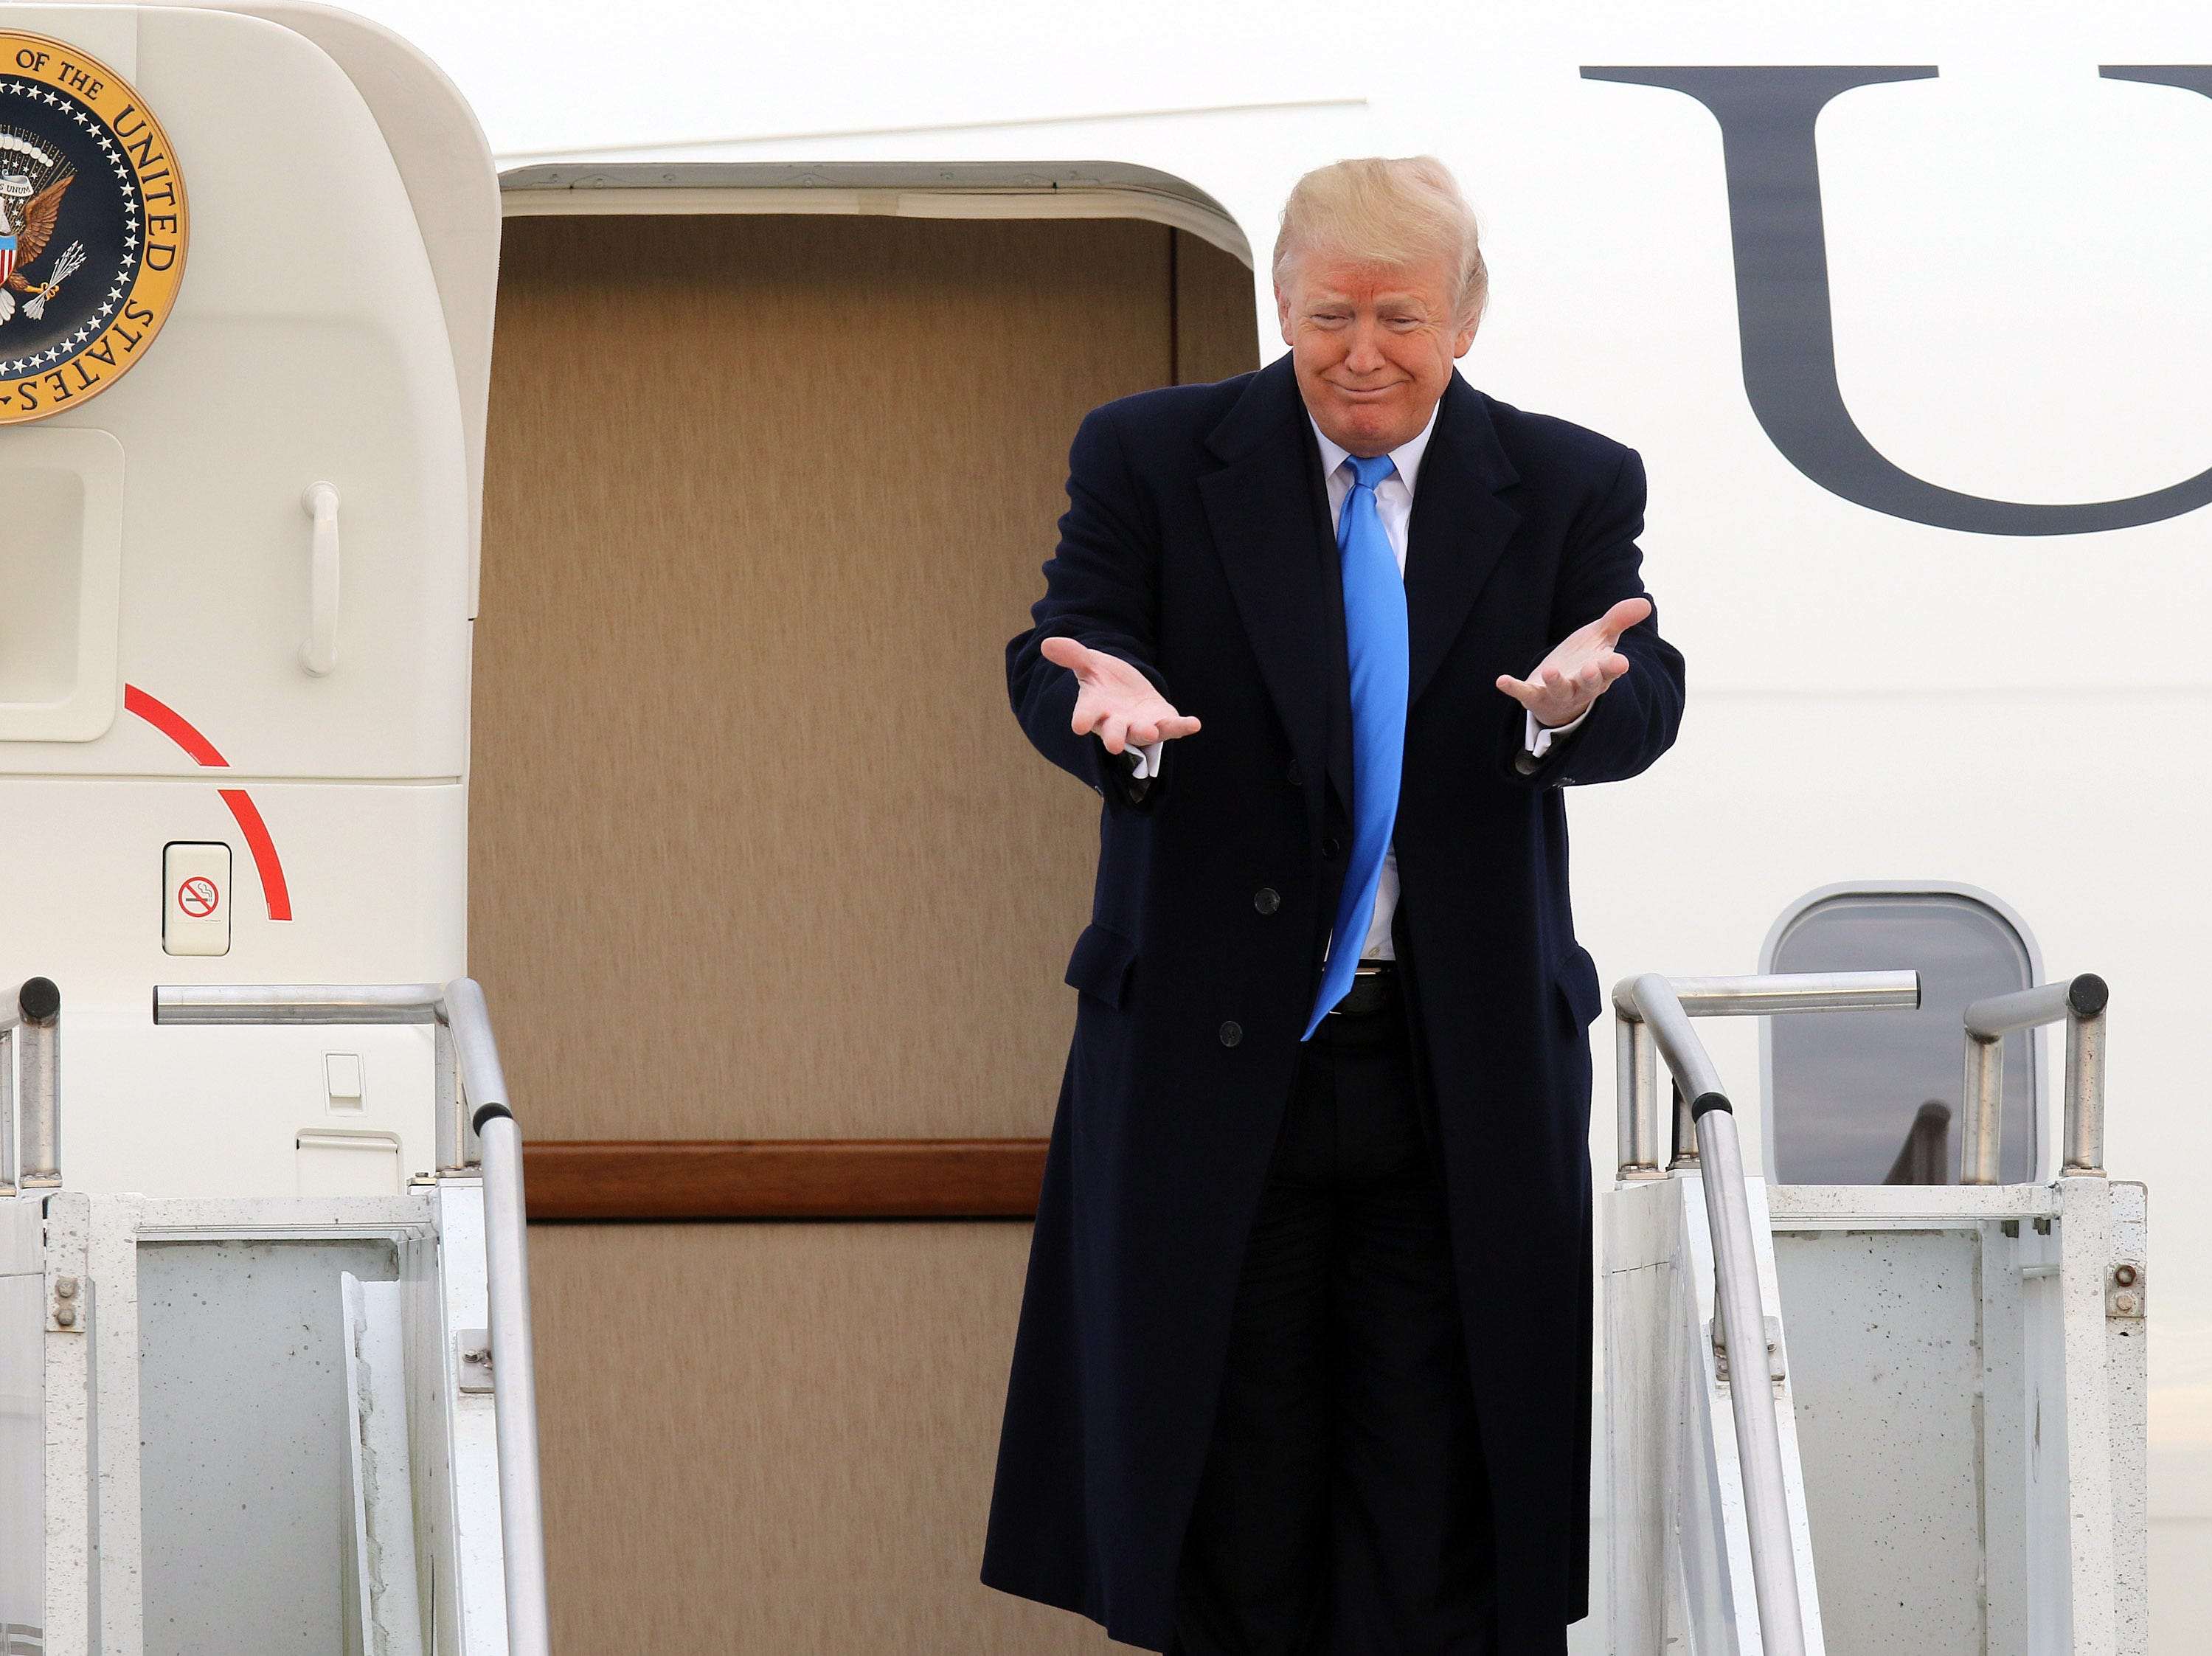 President Trump gestures towards dignitaries from outside Air Force One arrives at Bluegrass Airport in Lexington, Oct. 13, 2018.